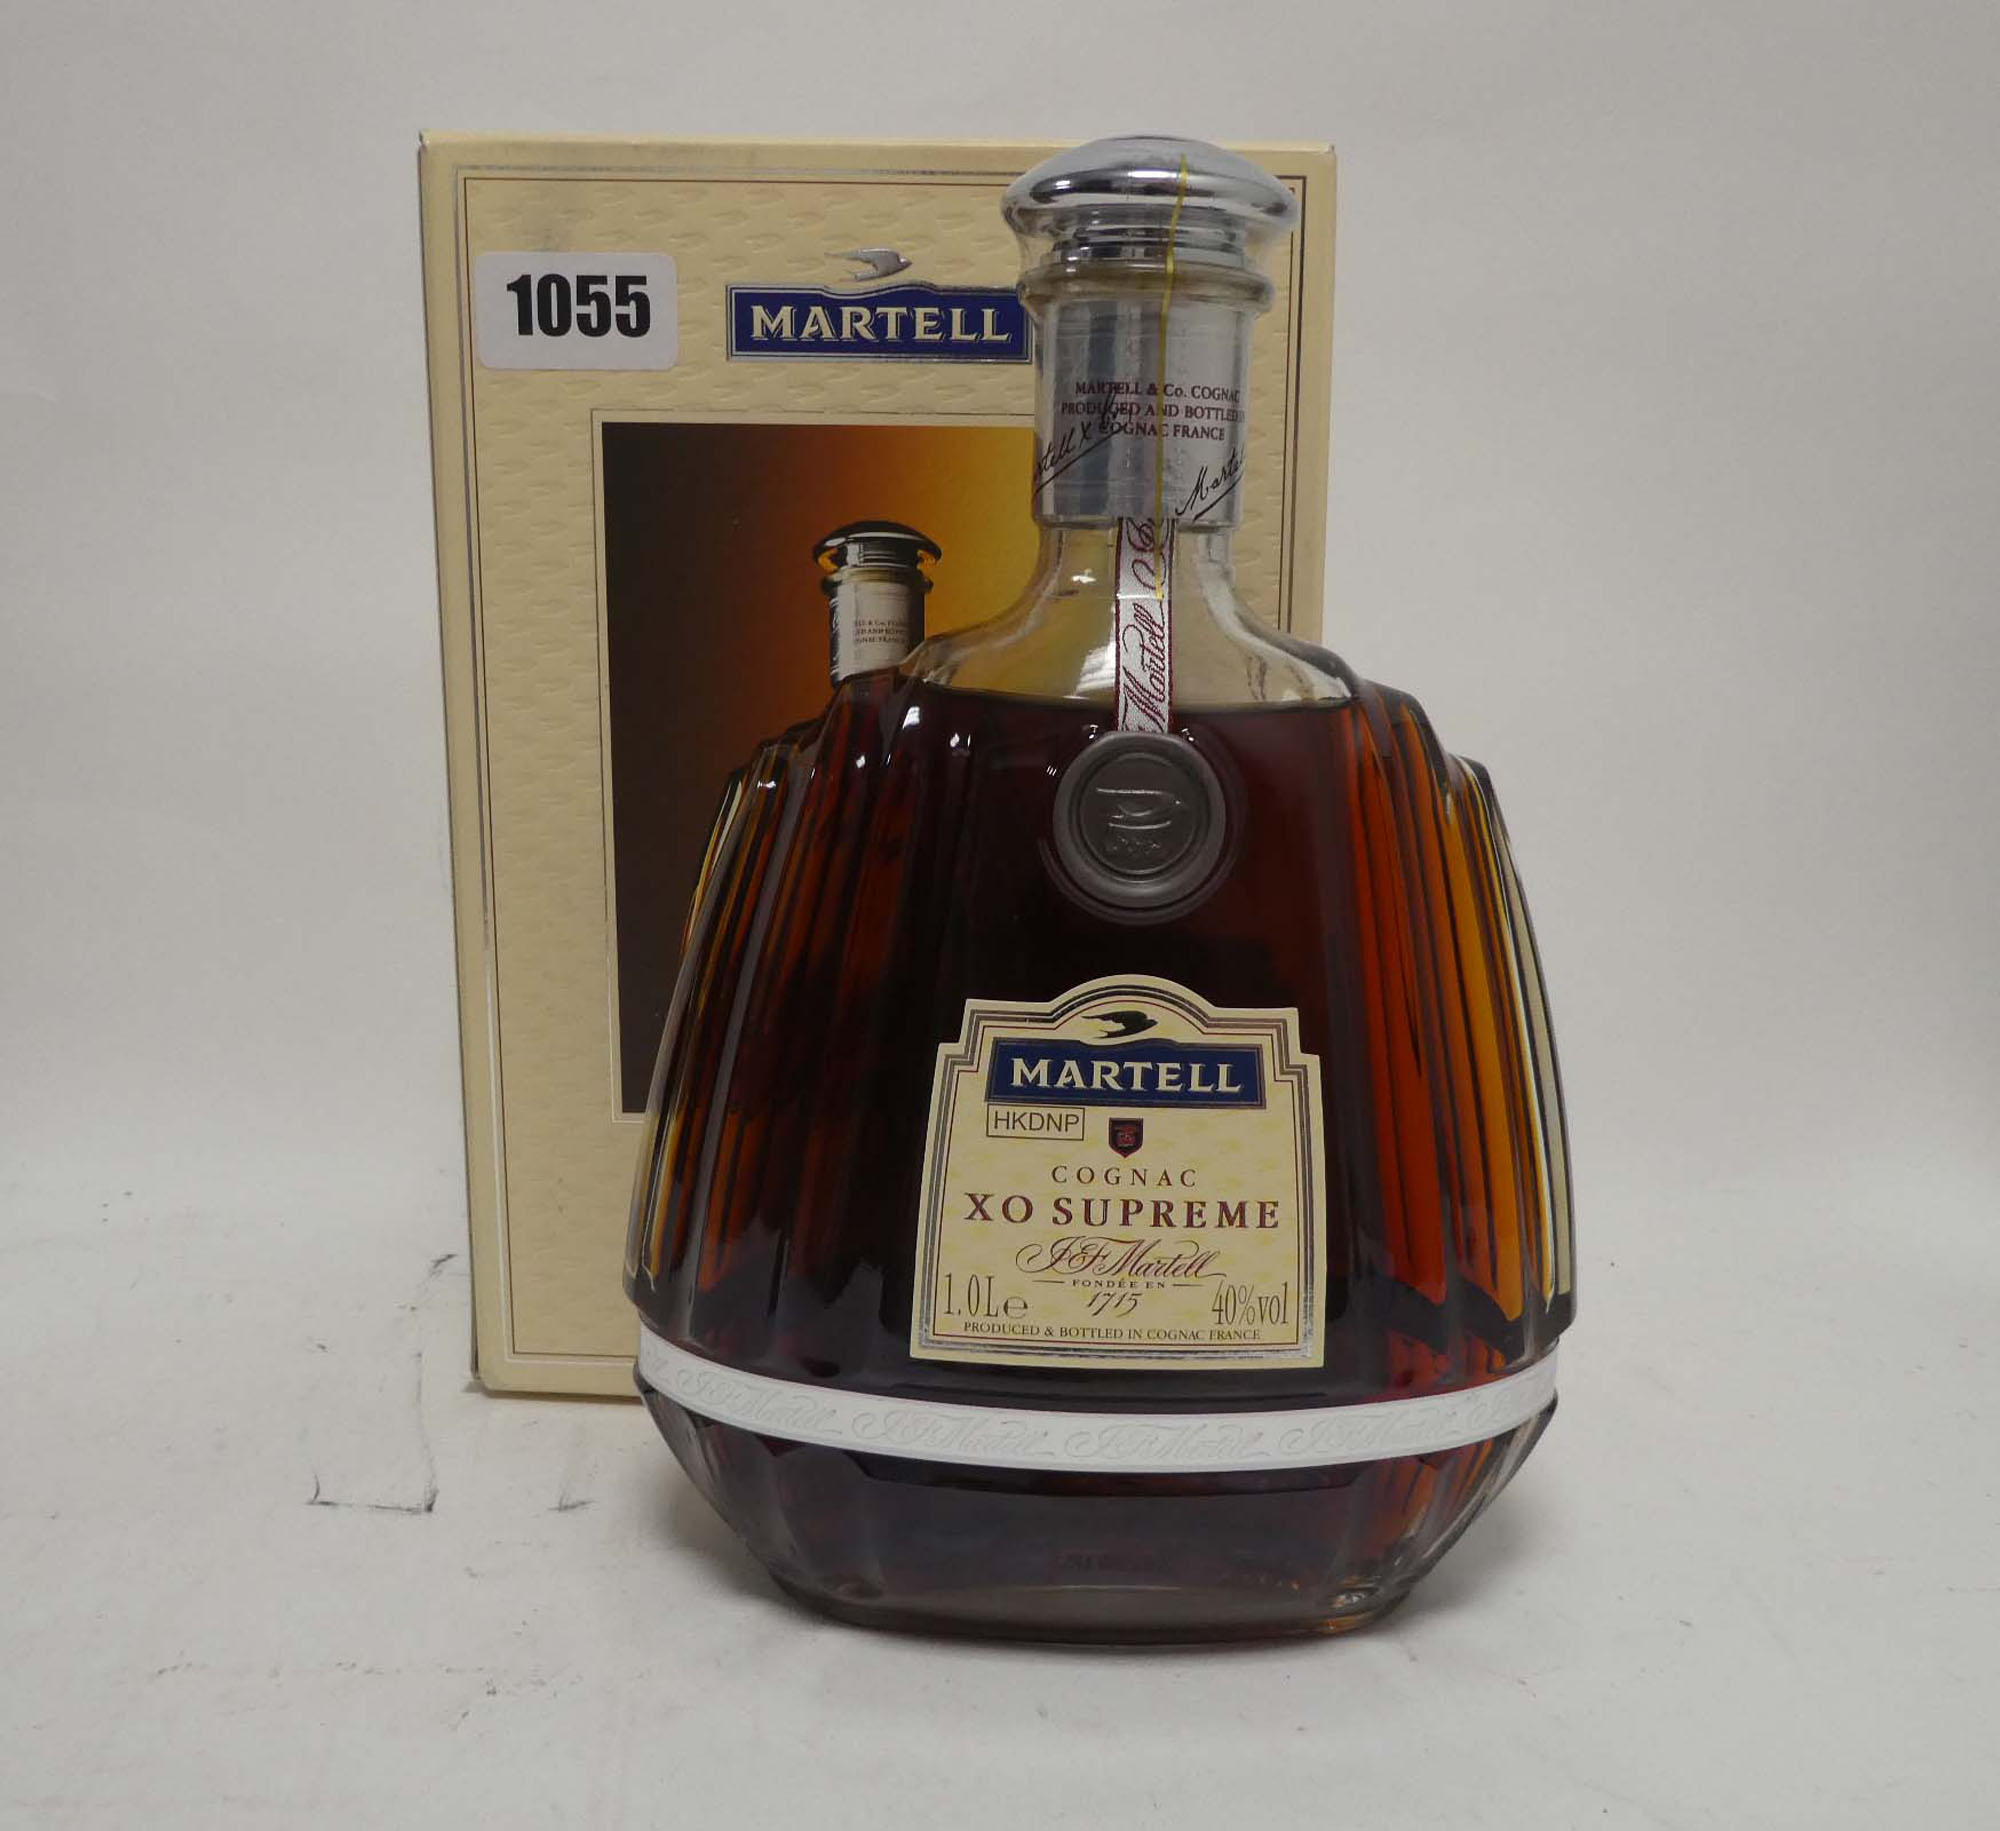 A bottle of J&F Martell XO Supreme Cognac with box old style bottle 1 litre 40%